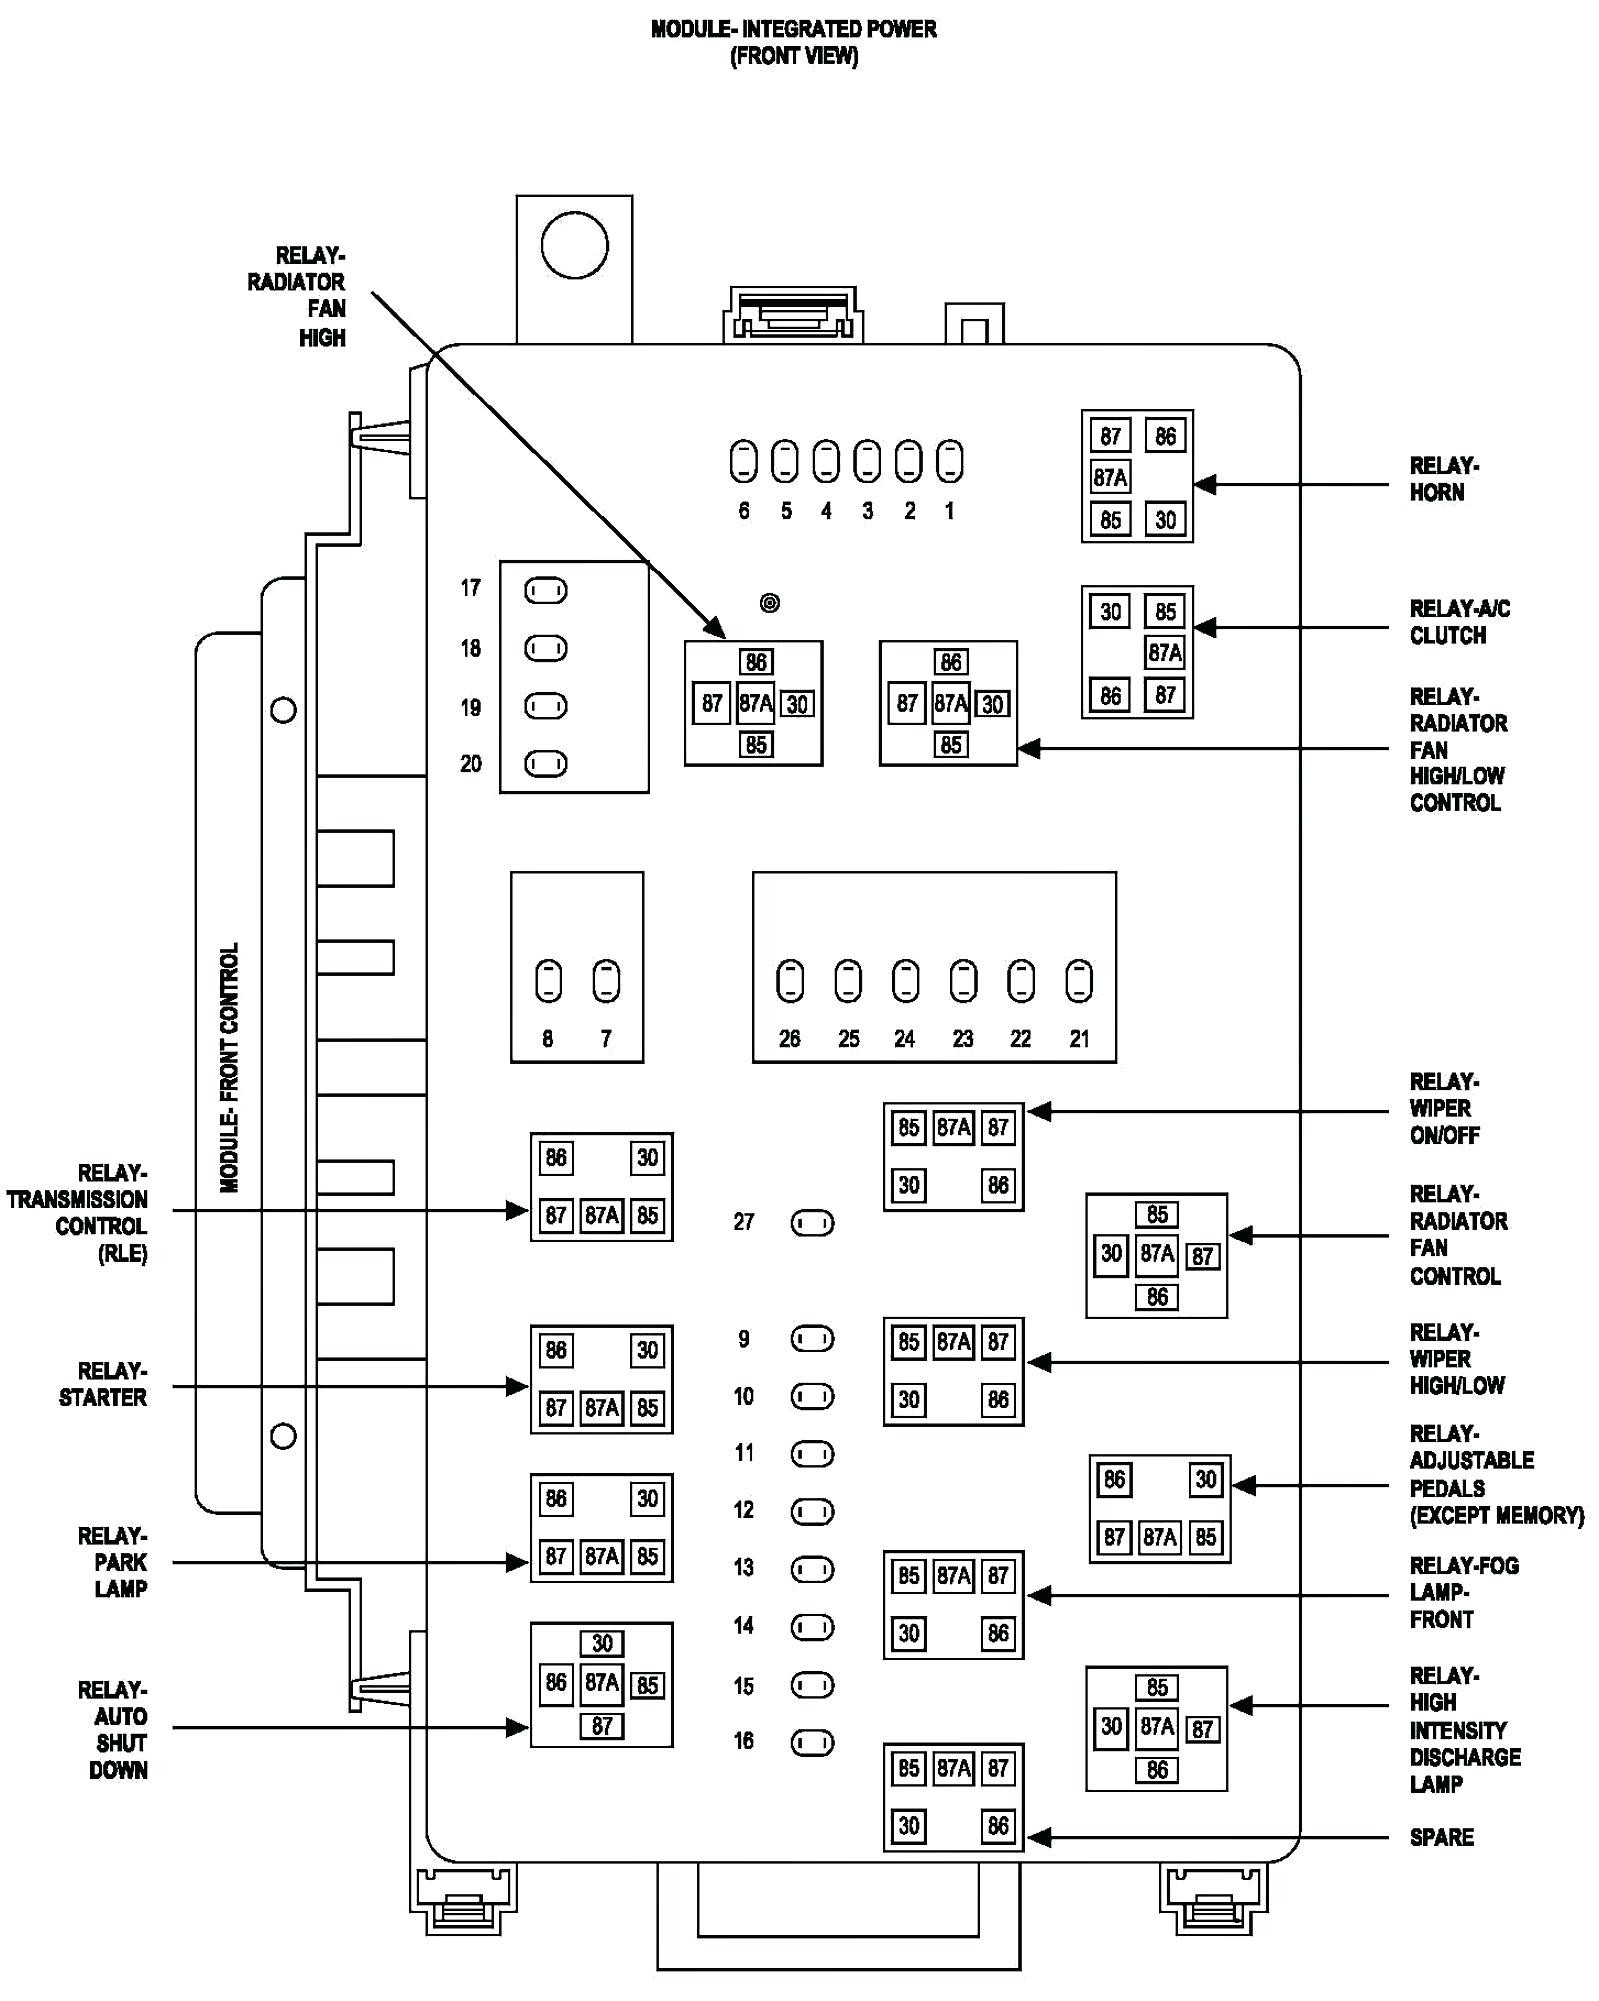 1997 chrysler concorde fuse box diagram 8 7 ulrich temme de \u20221996 chrysler lhs fuse box location wiring diagrams schema rh 8 ec manching de chrysler 300